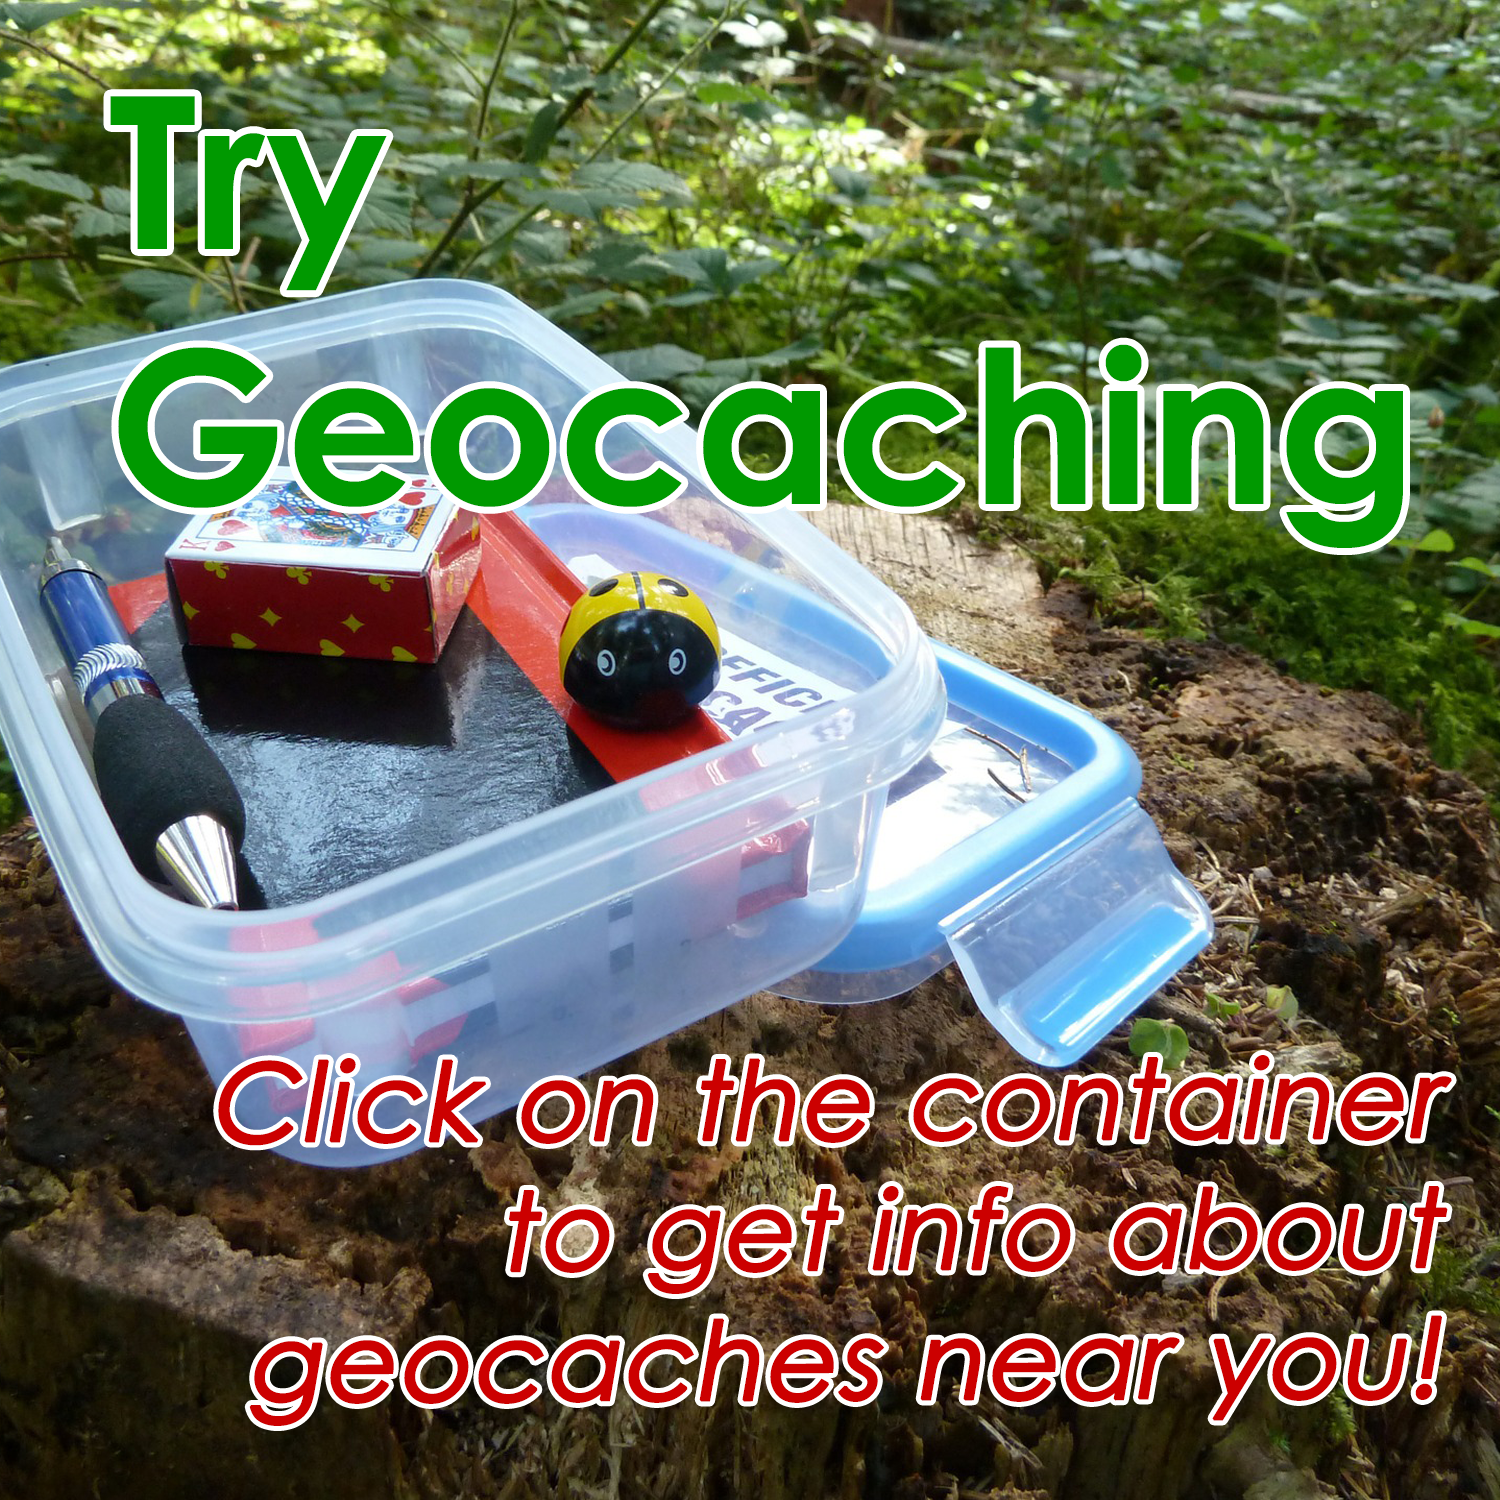 Try Geocaching! Click anywhere on the image to get info about geocaches in your area!